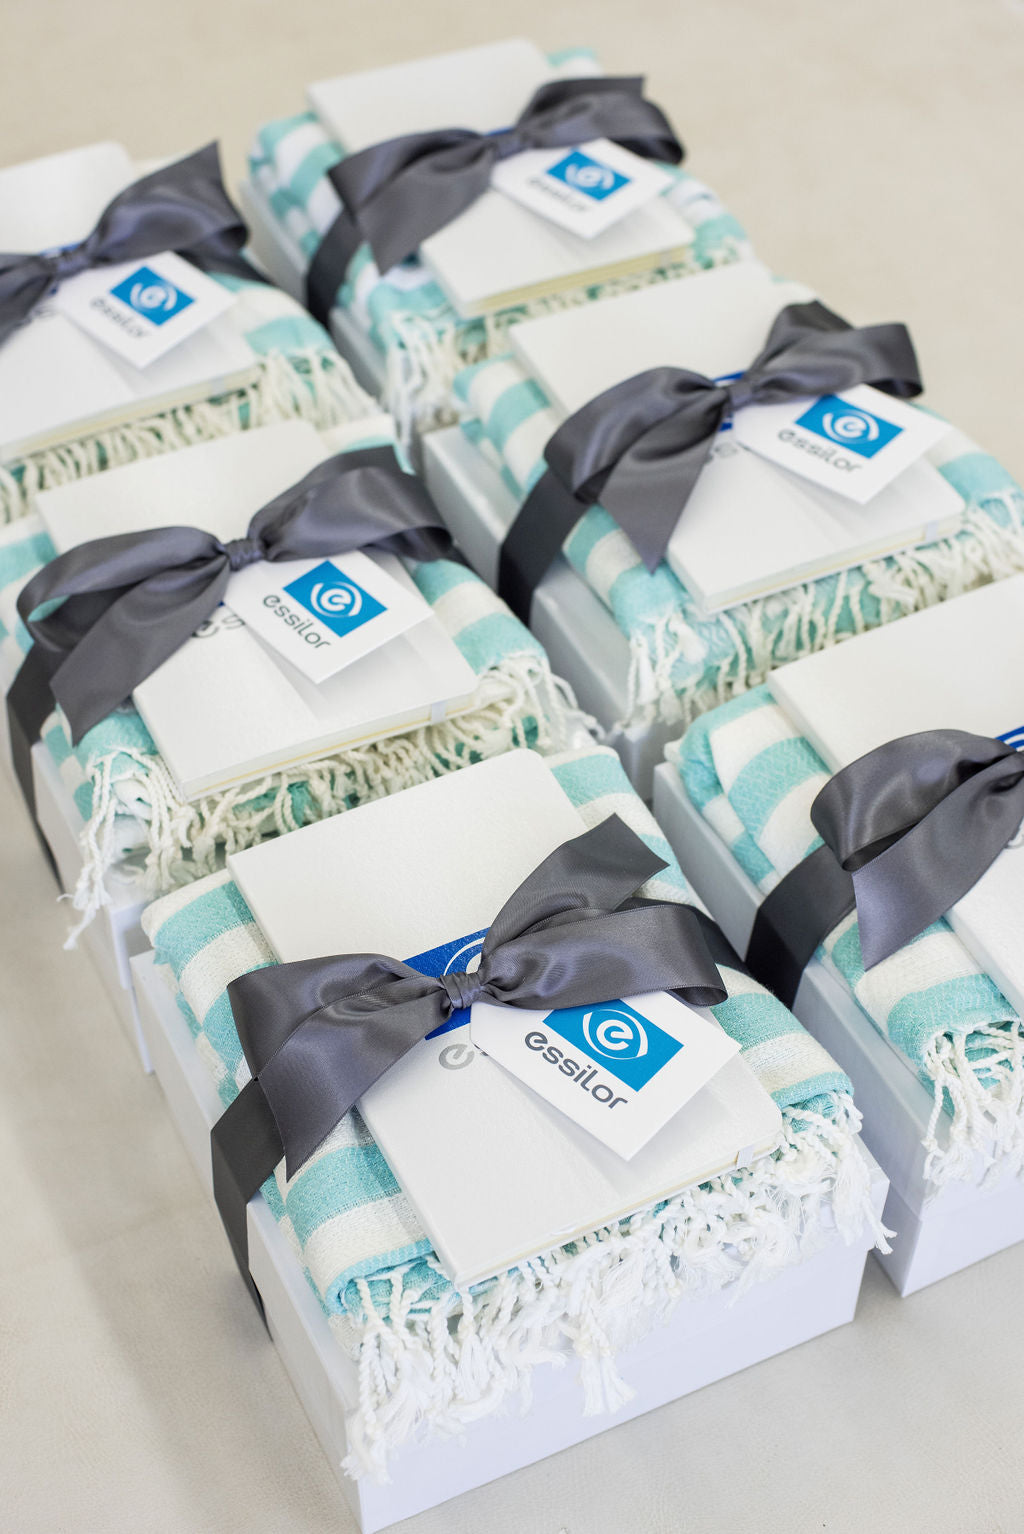 virtual-event-gifts